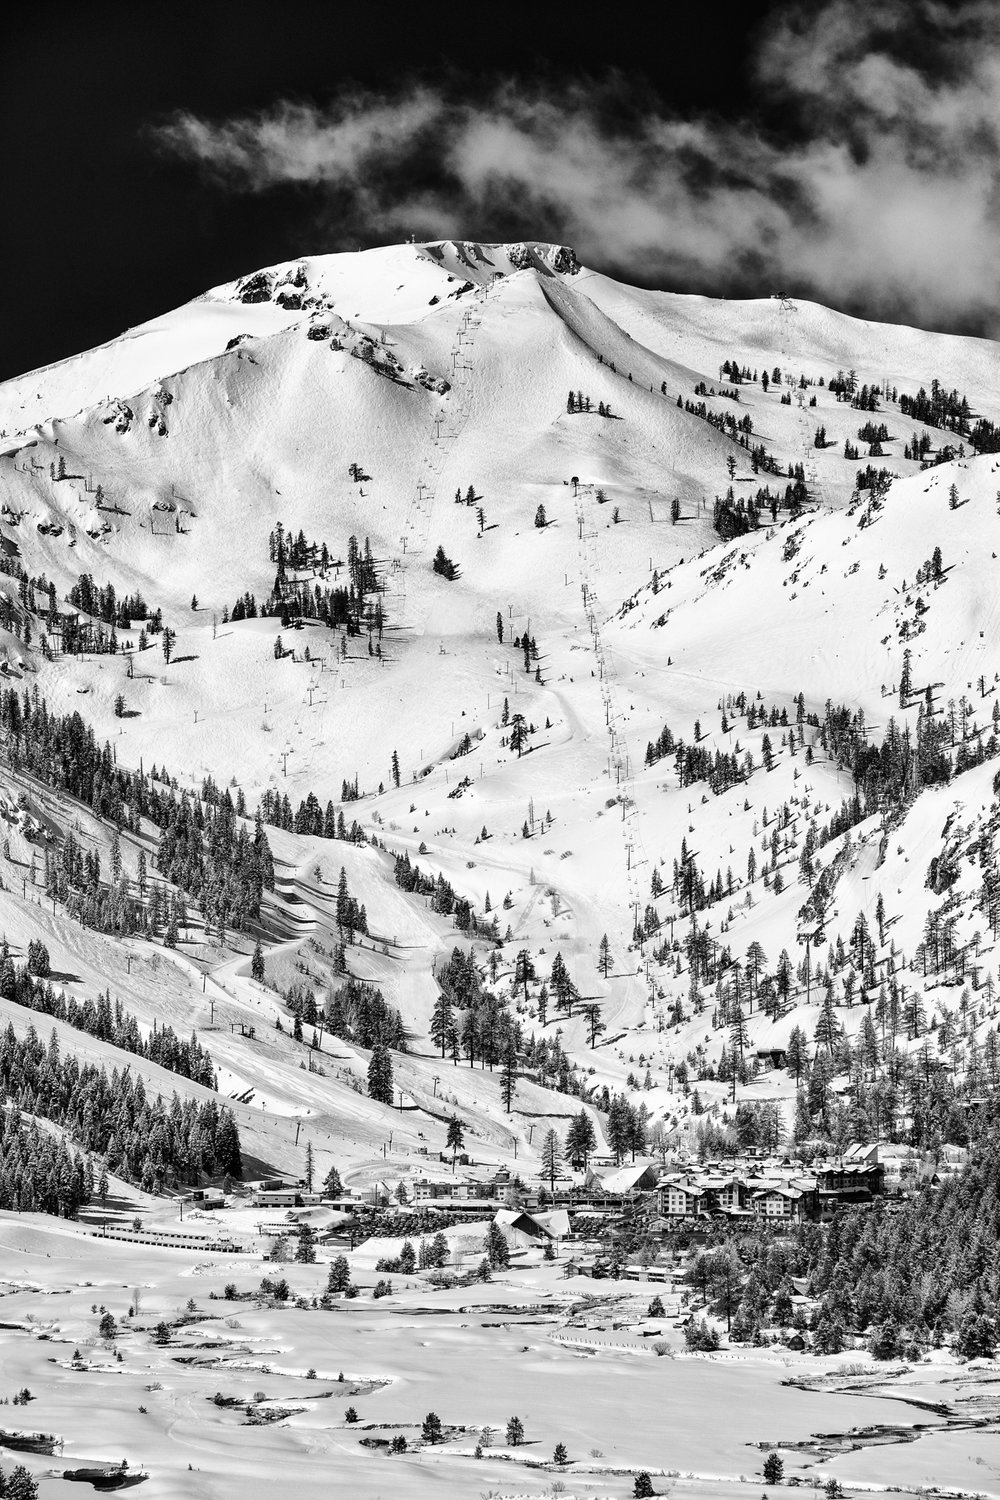 20170327_GK-SquawAlpine_9601-Edit_bw.jpg